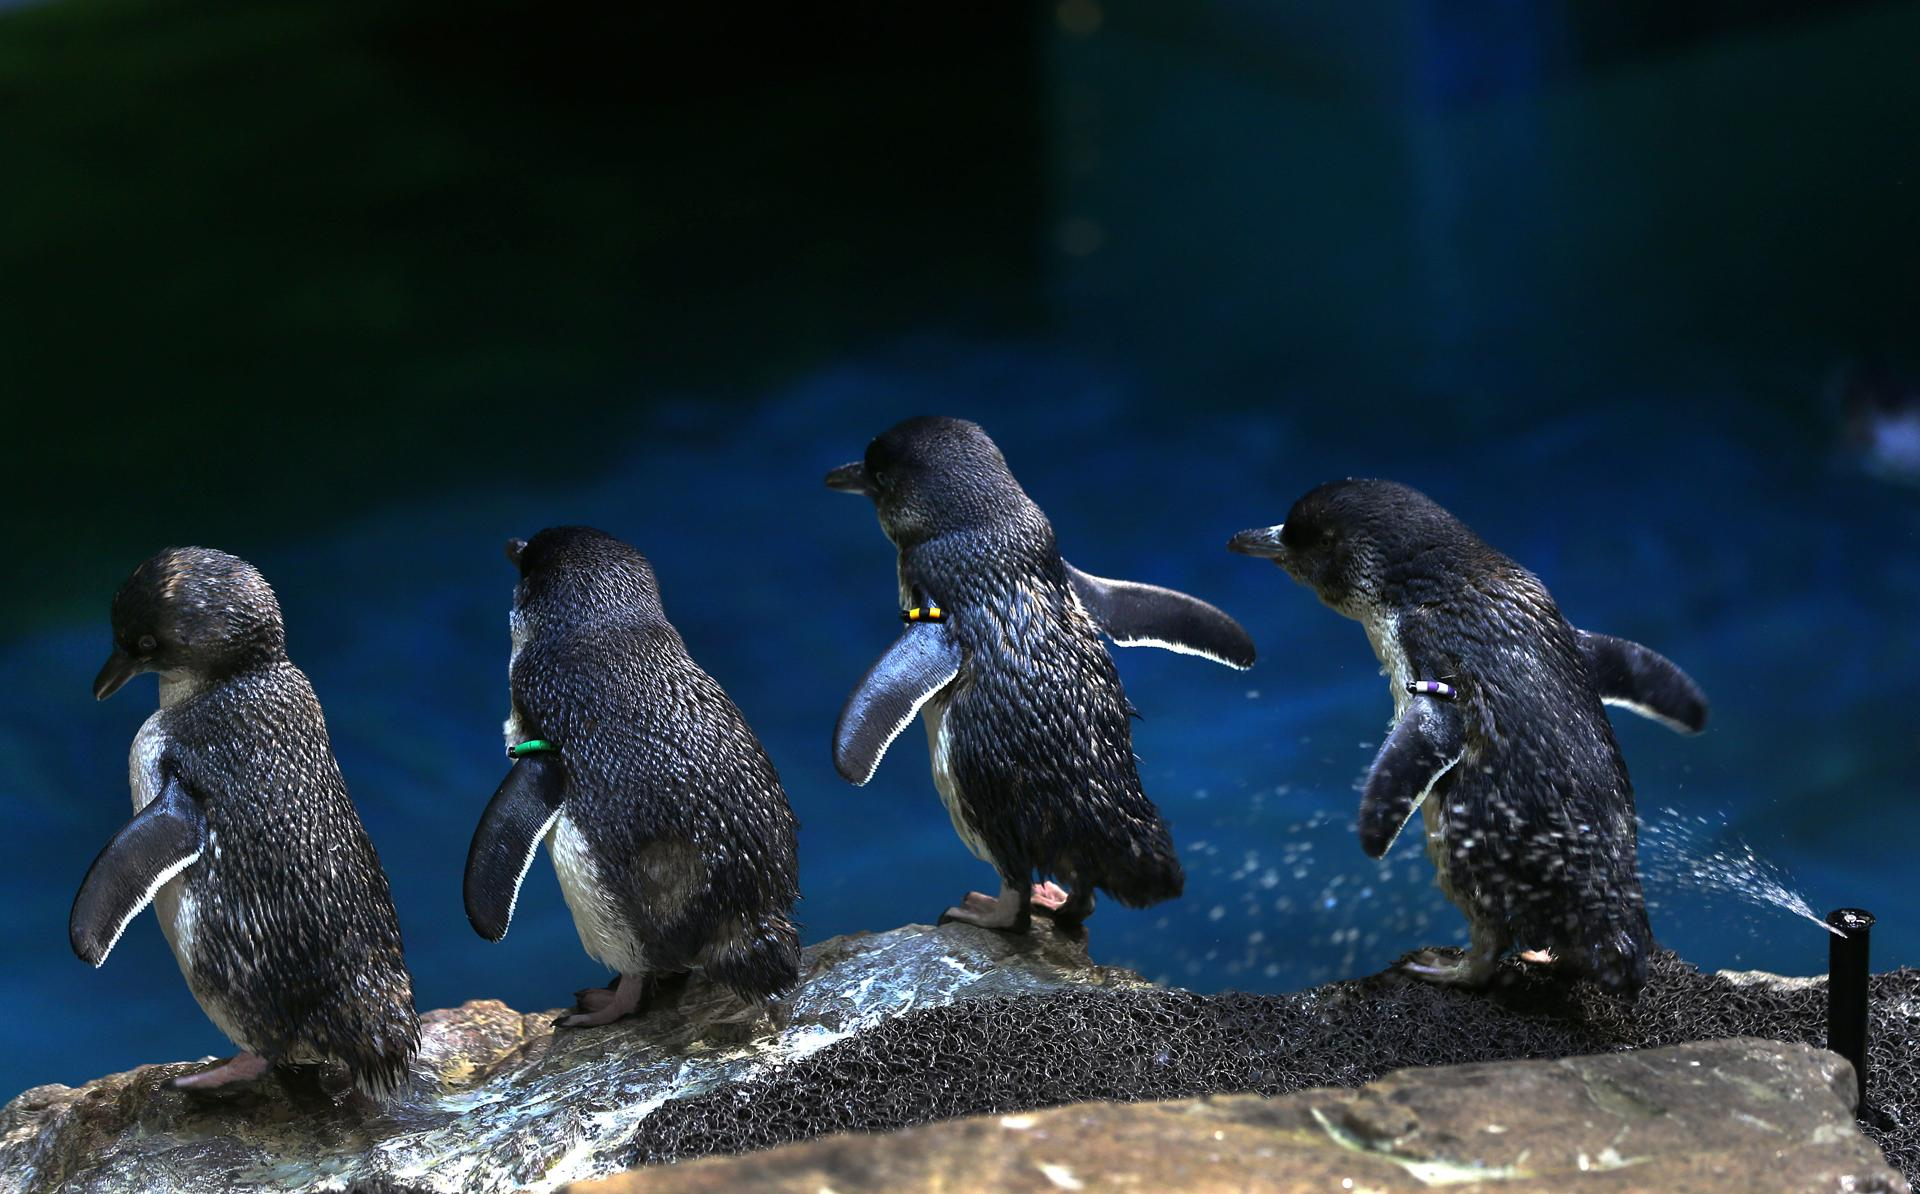 Adult Little Blue Penguins sit on a rock at an exhibit in the New England Aquaruim.